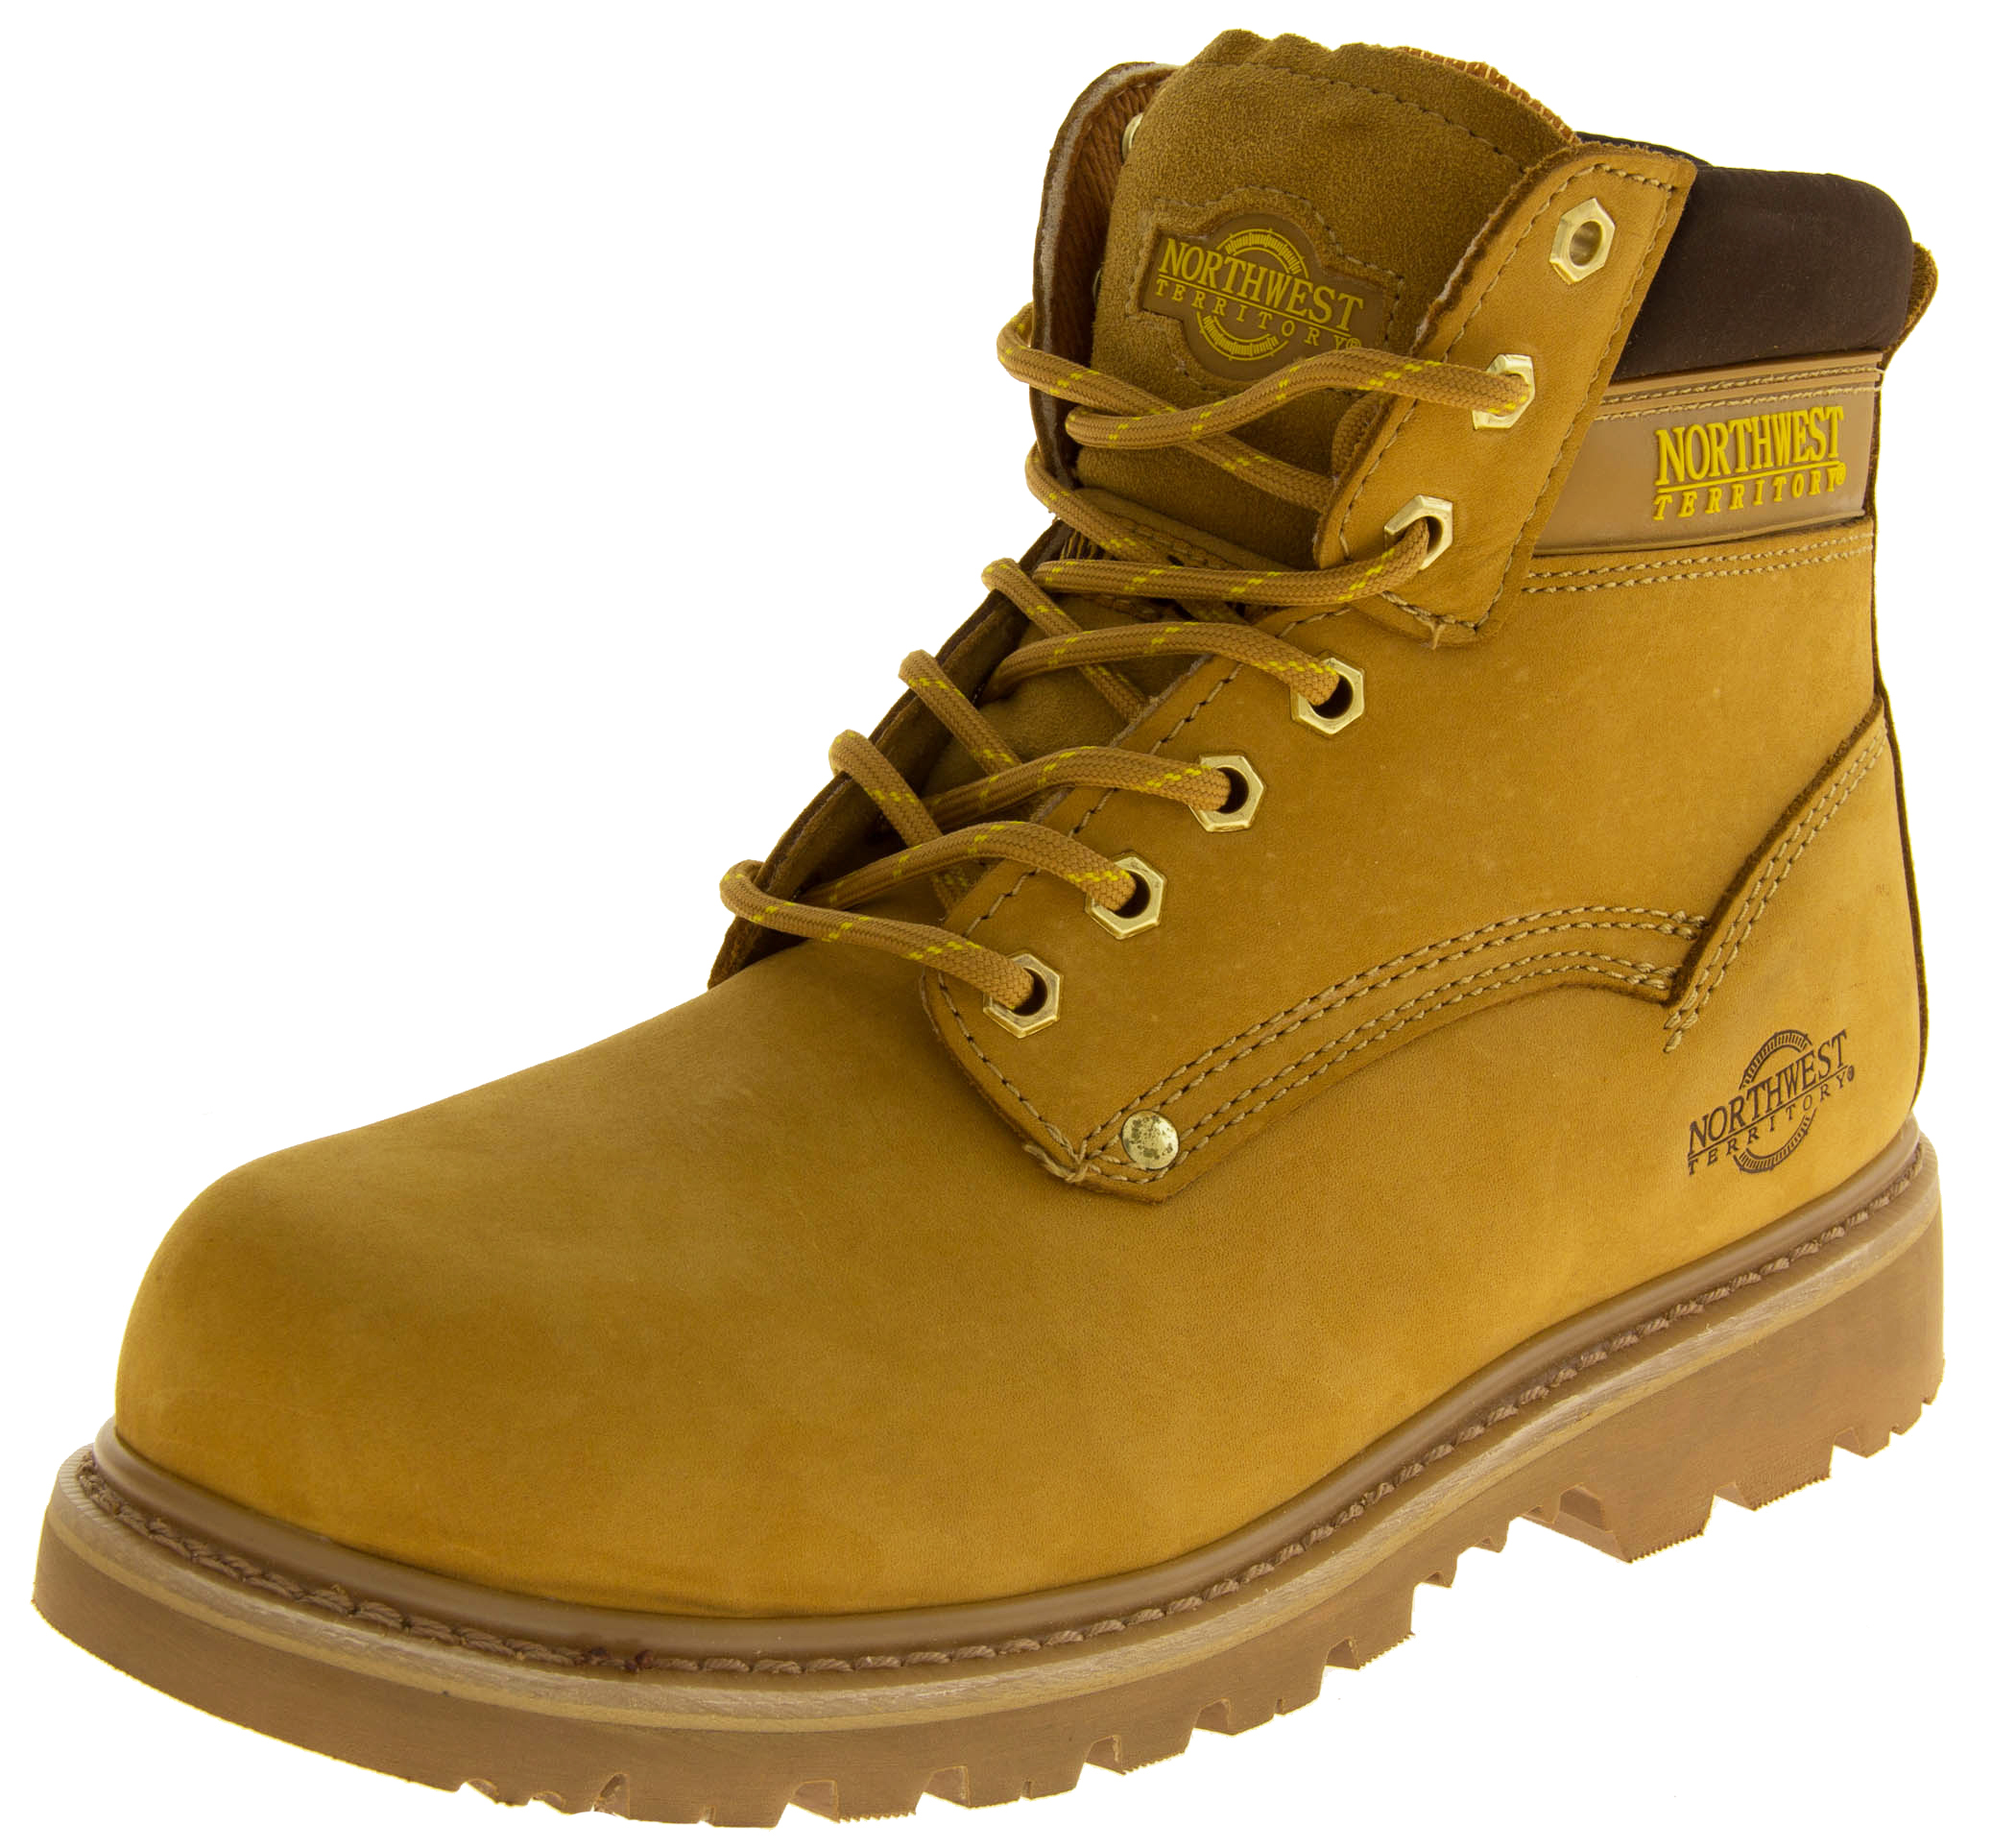 Mens NORTHWEST TERRITORY QUEBEC Leather Safety Boots